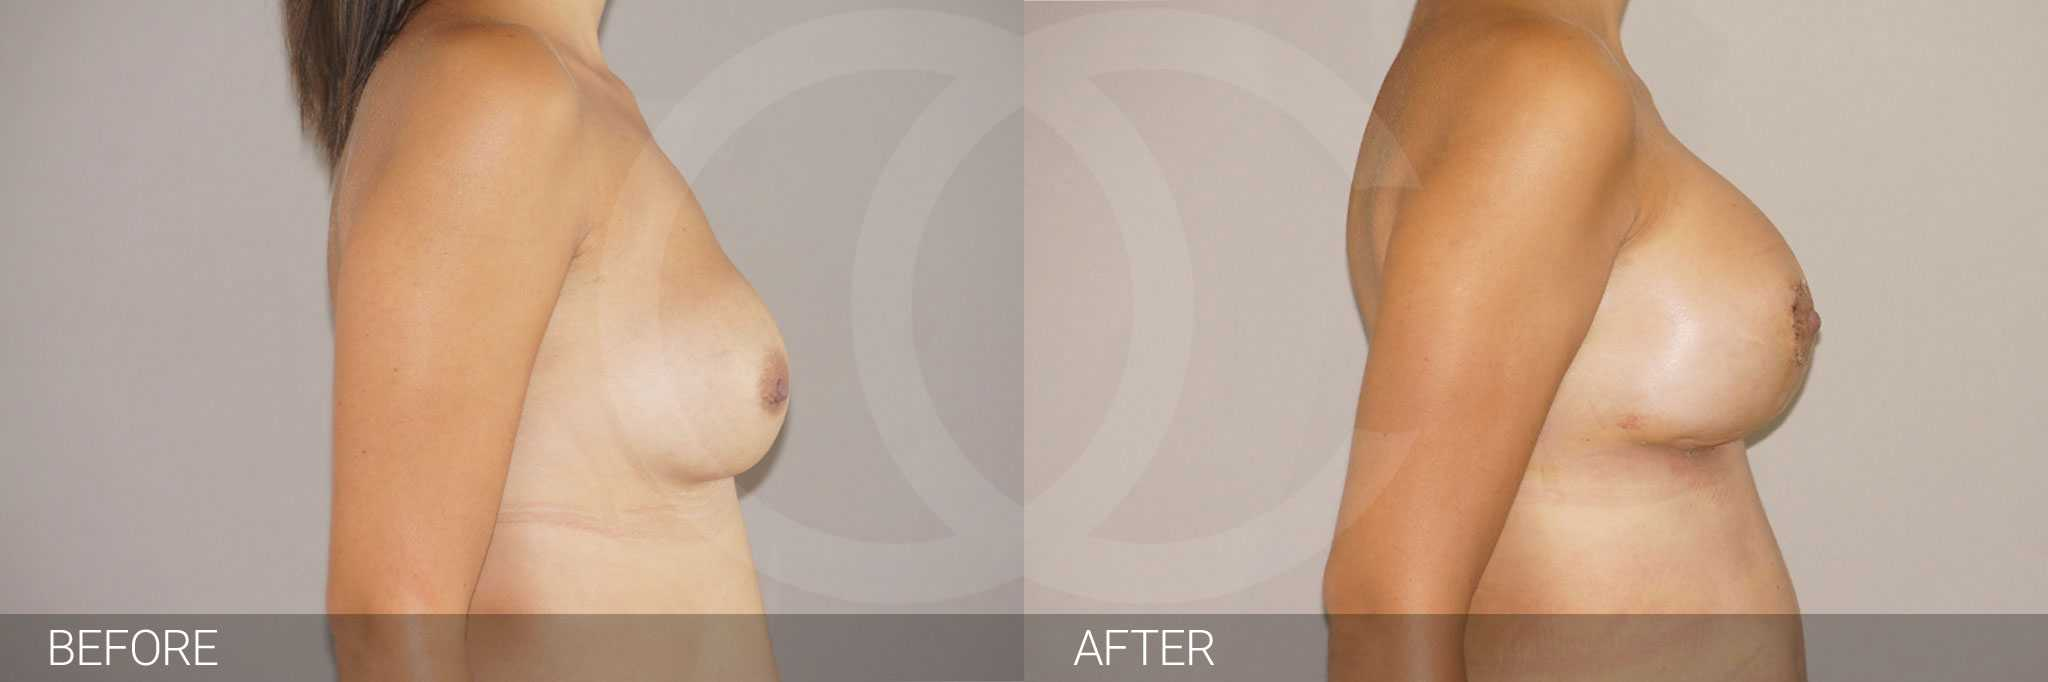 Breast Reconstruction Breast asymmetry ante/post-op III